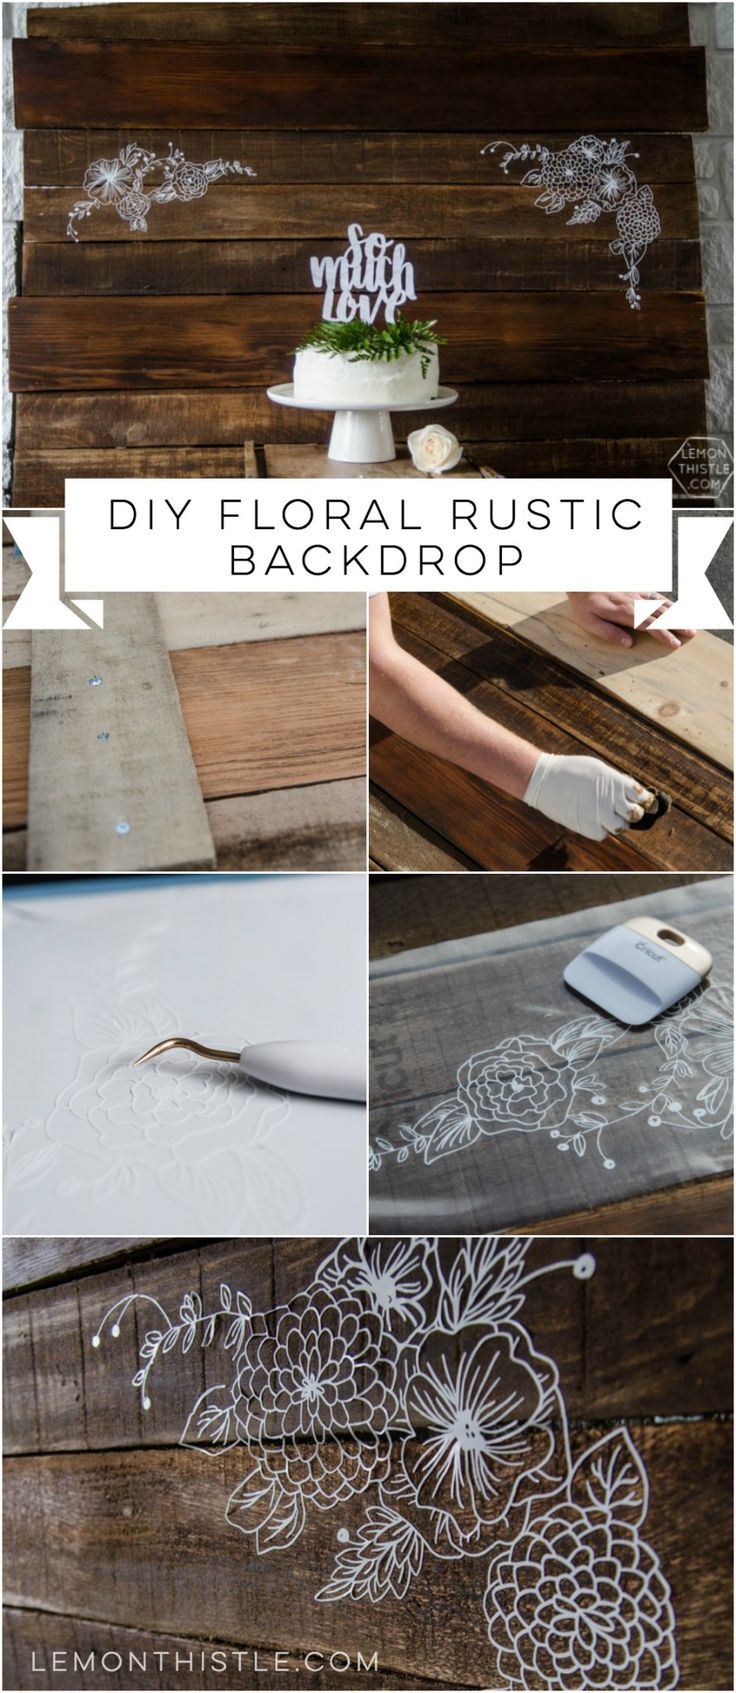 59 Incredibly Simple Rustic Décor Ideas That Can Make Your: 5610 Best Cricut Ideas From Bloggers And More Images On